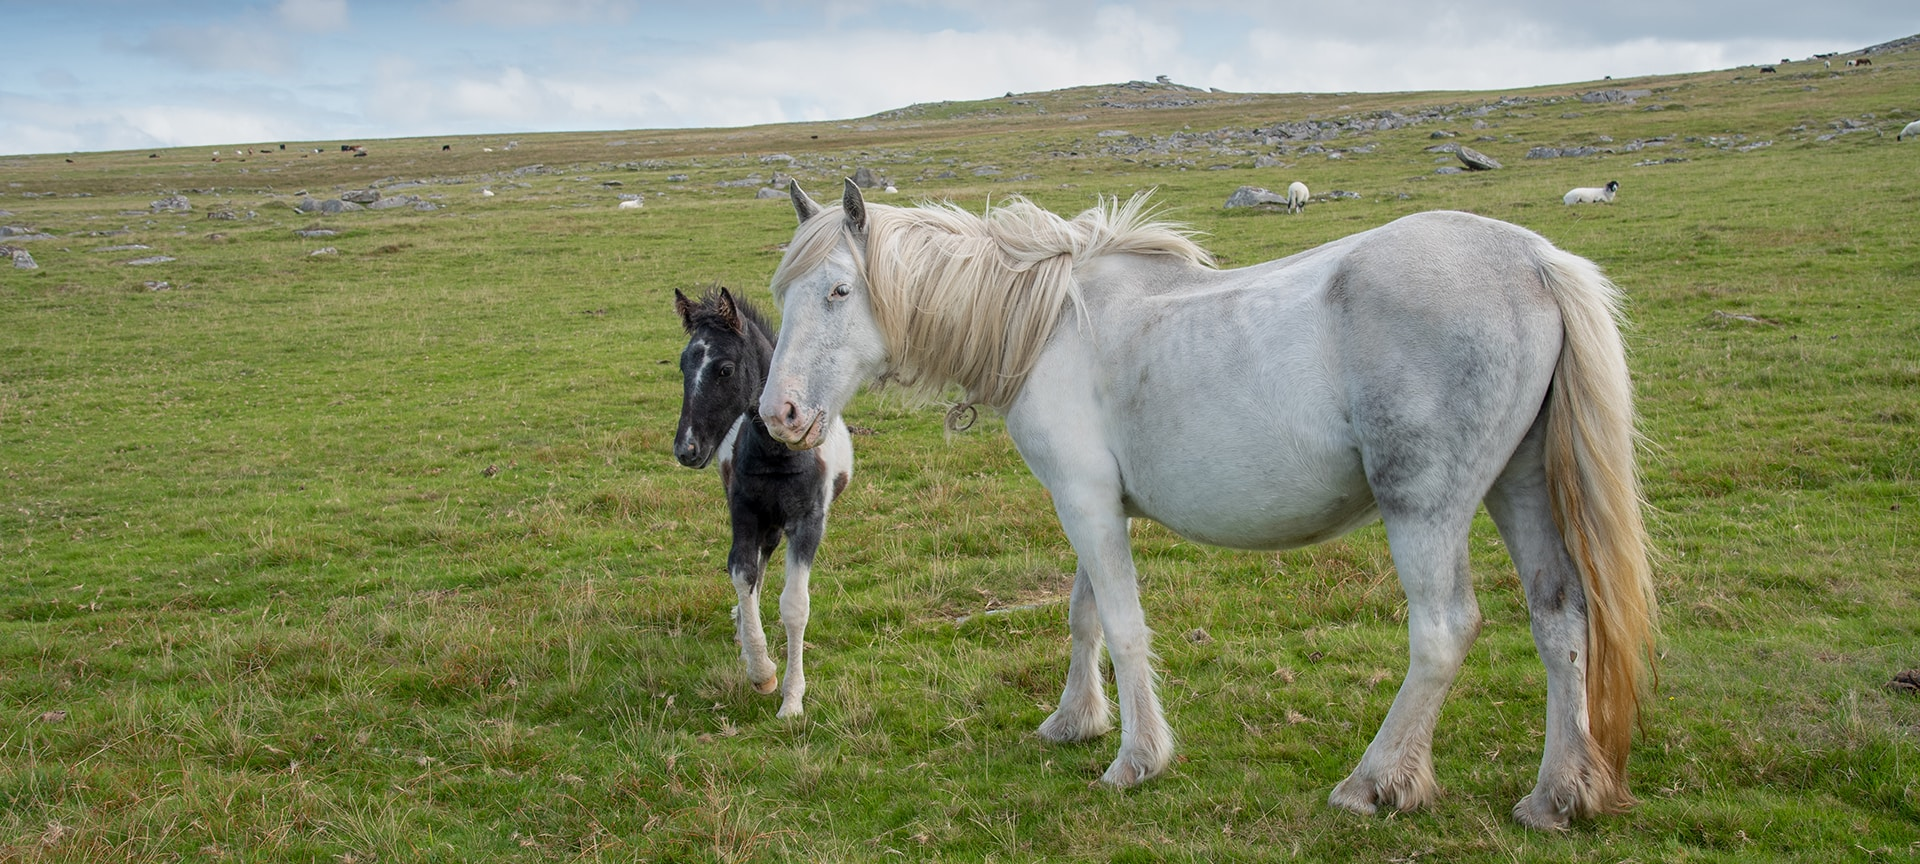 The wild horses and ponies that roam Bodmin Moor are a captivating sight along with the many Bronze Age features, hut circles and countless standing stones which are clearly visible on any walk across the moor.